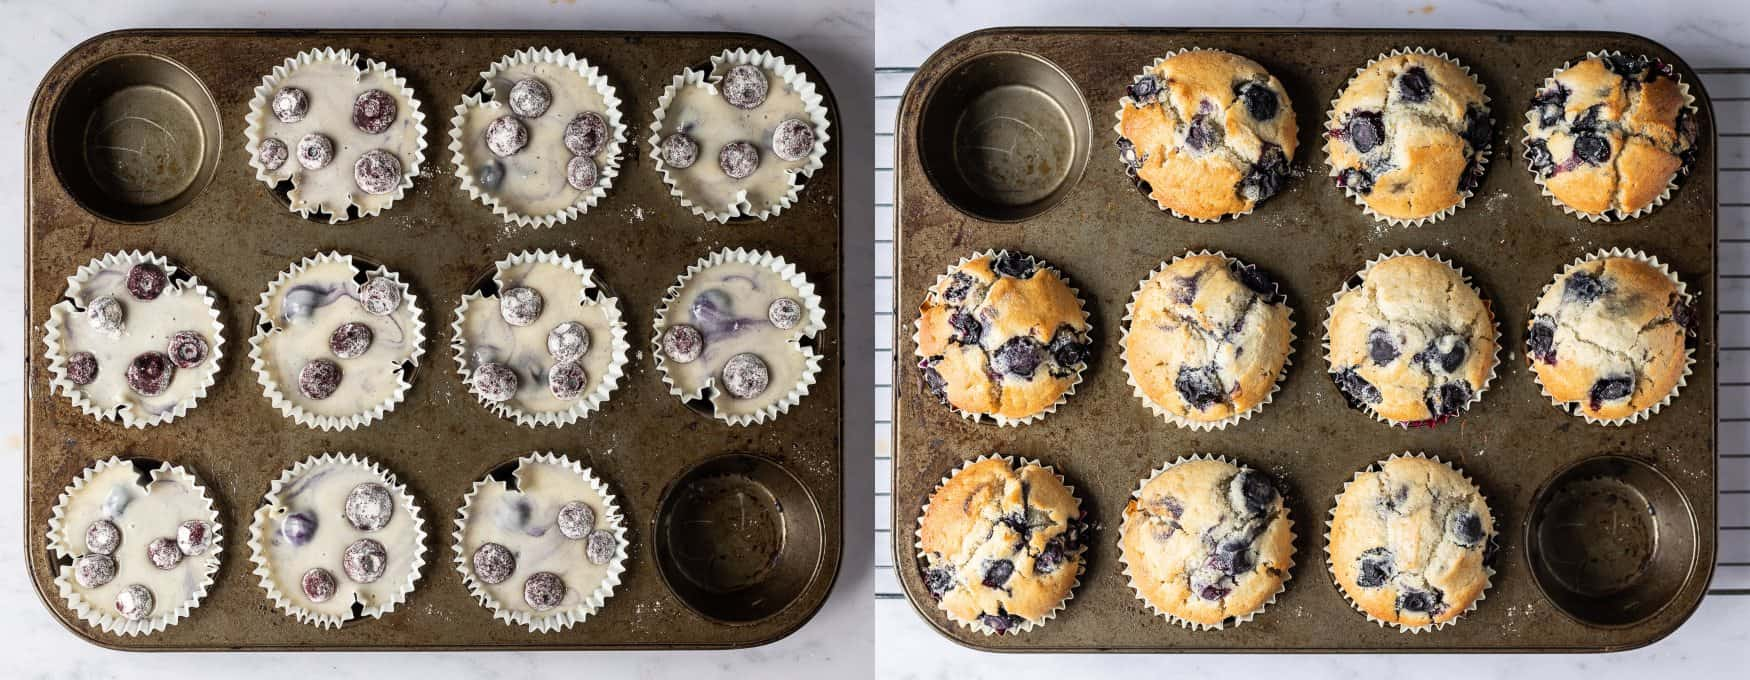 step 3 - dividing the batter between the cases and baking the muffins.